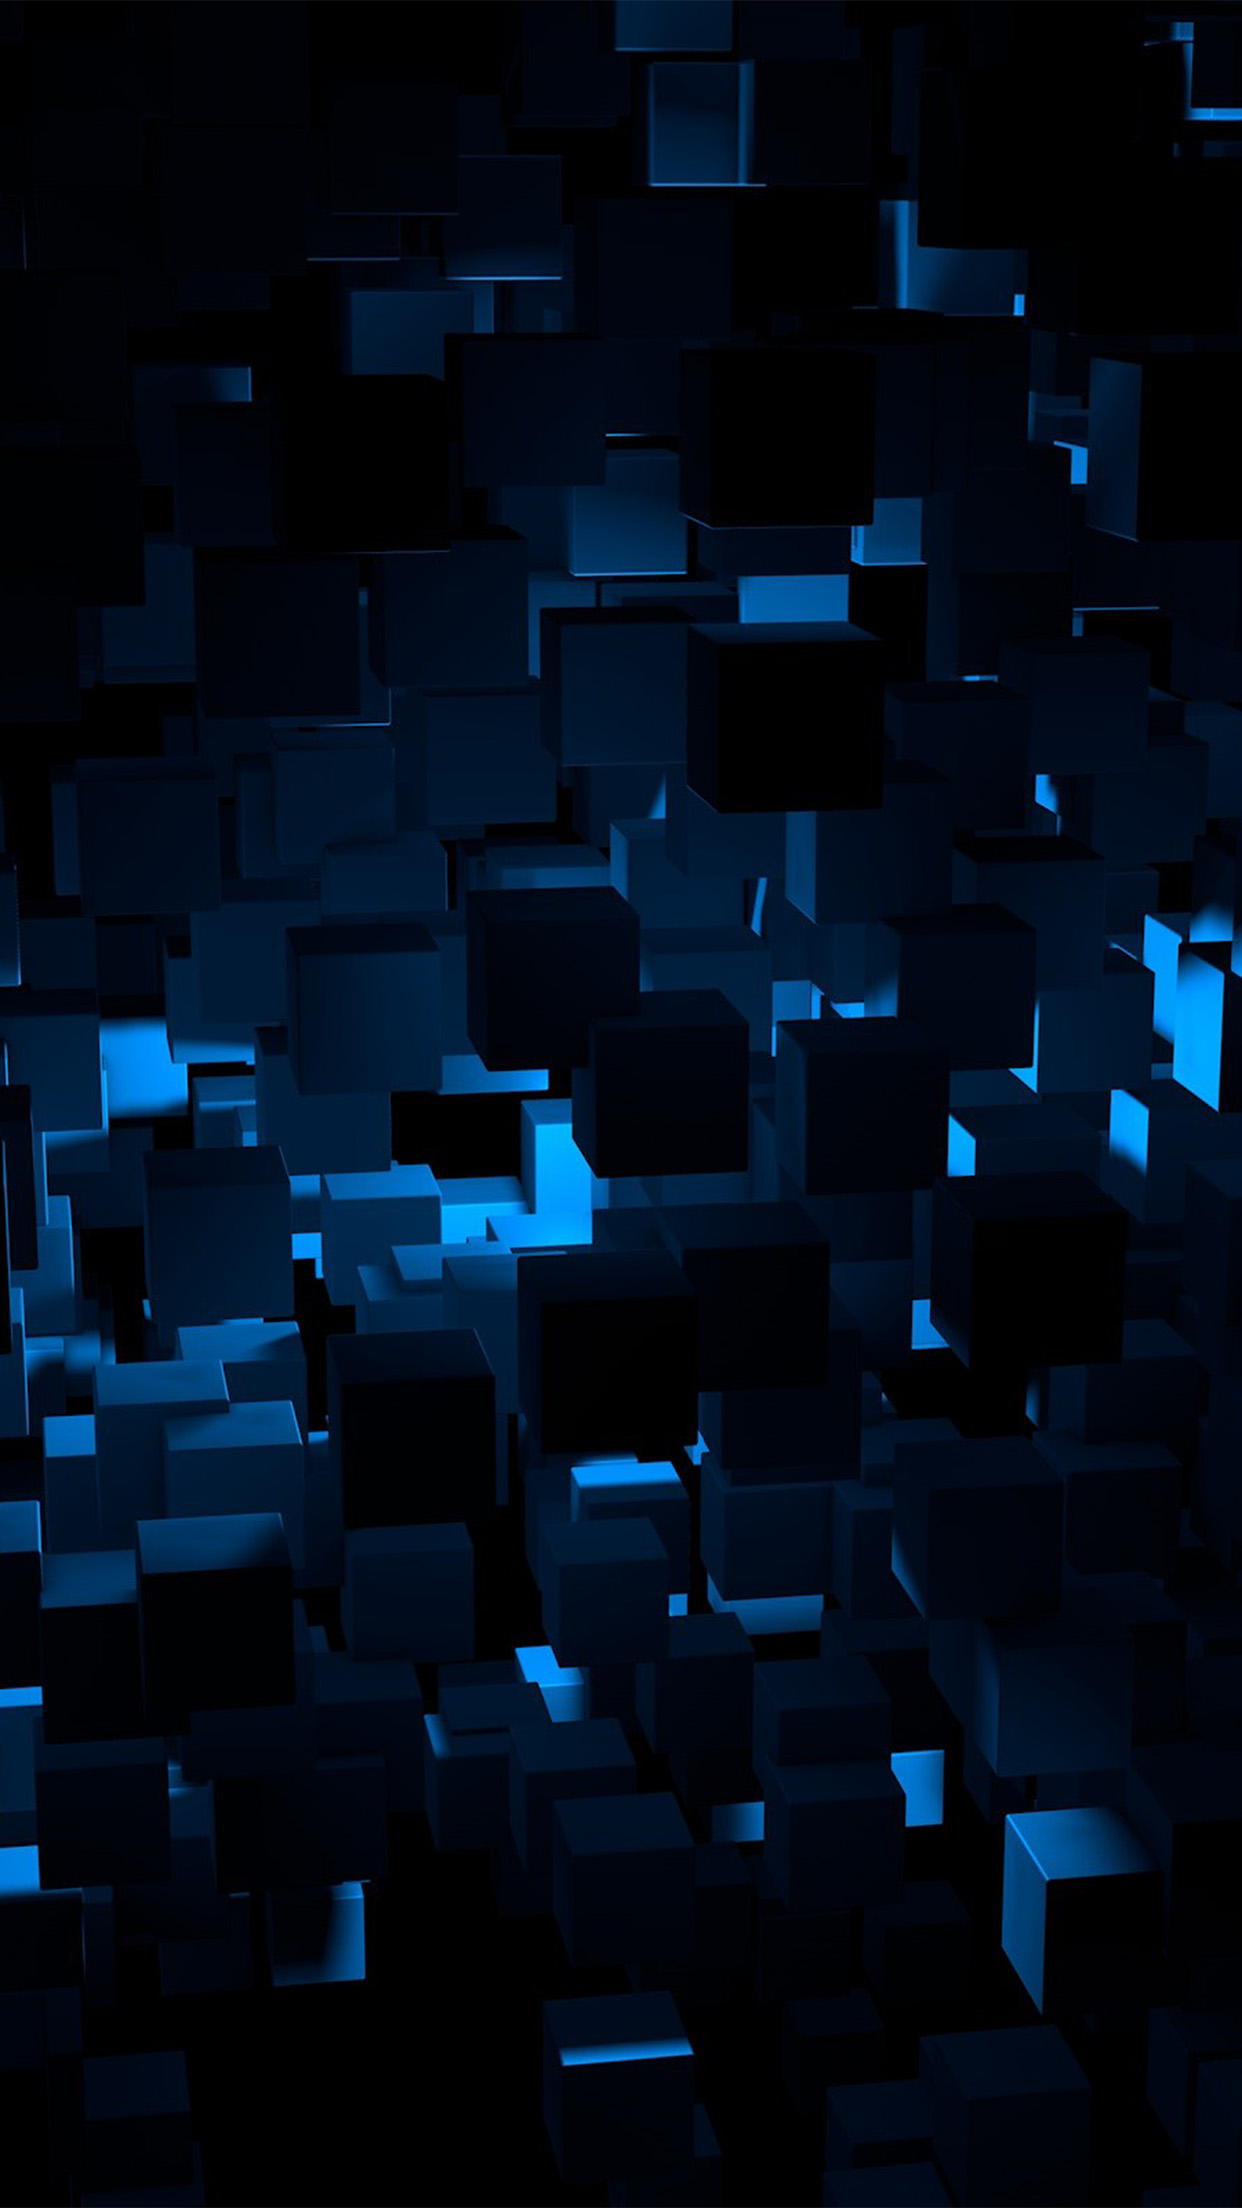 cube dark blue abstract pattern android wallpaper android hd wallpapers